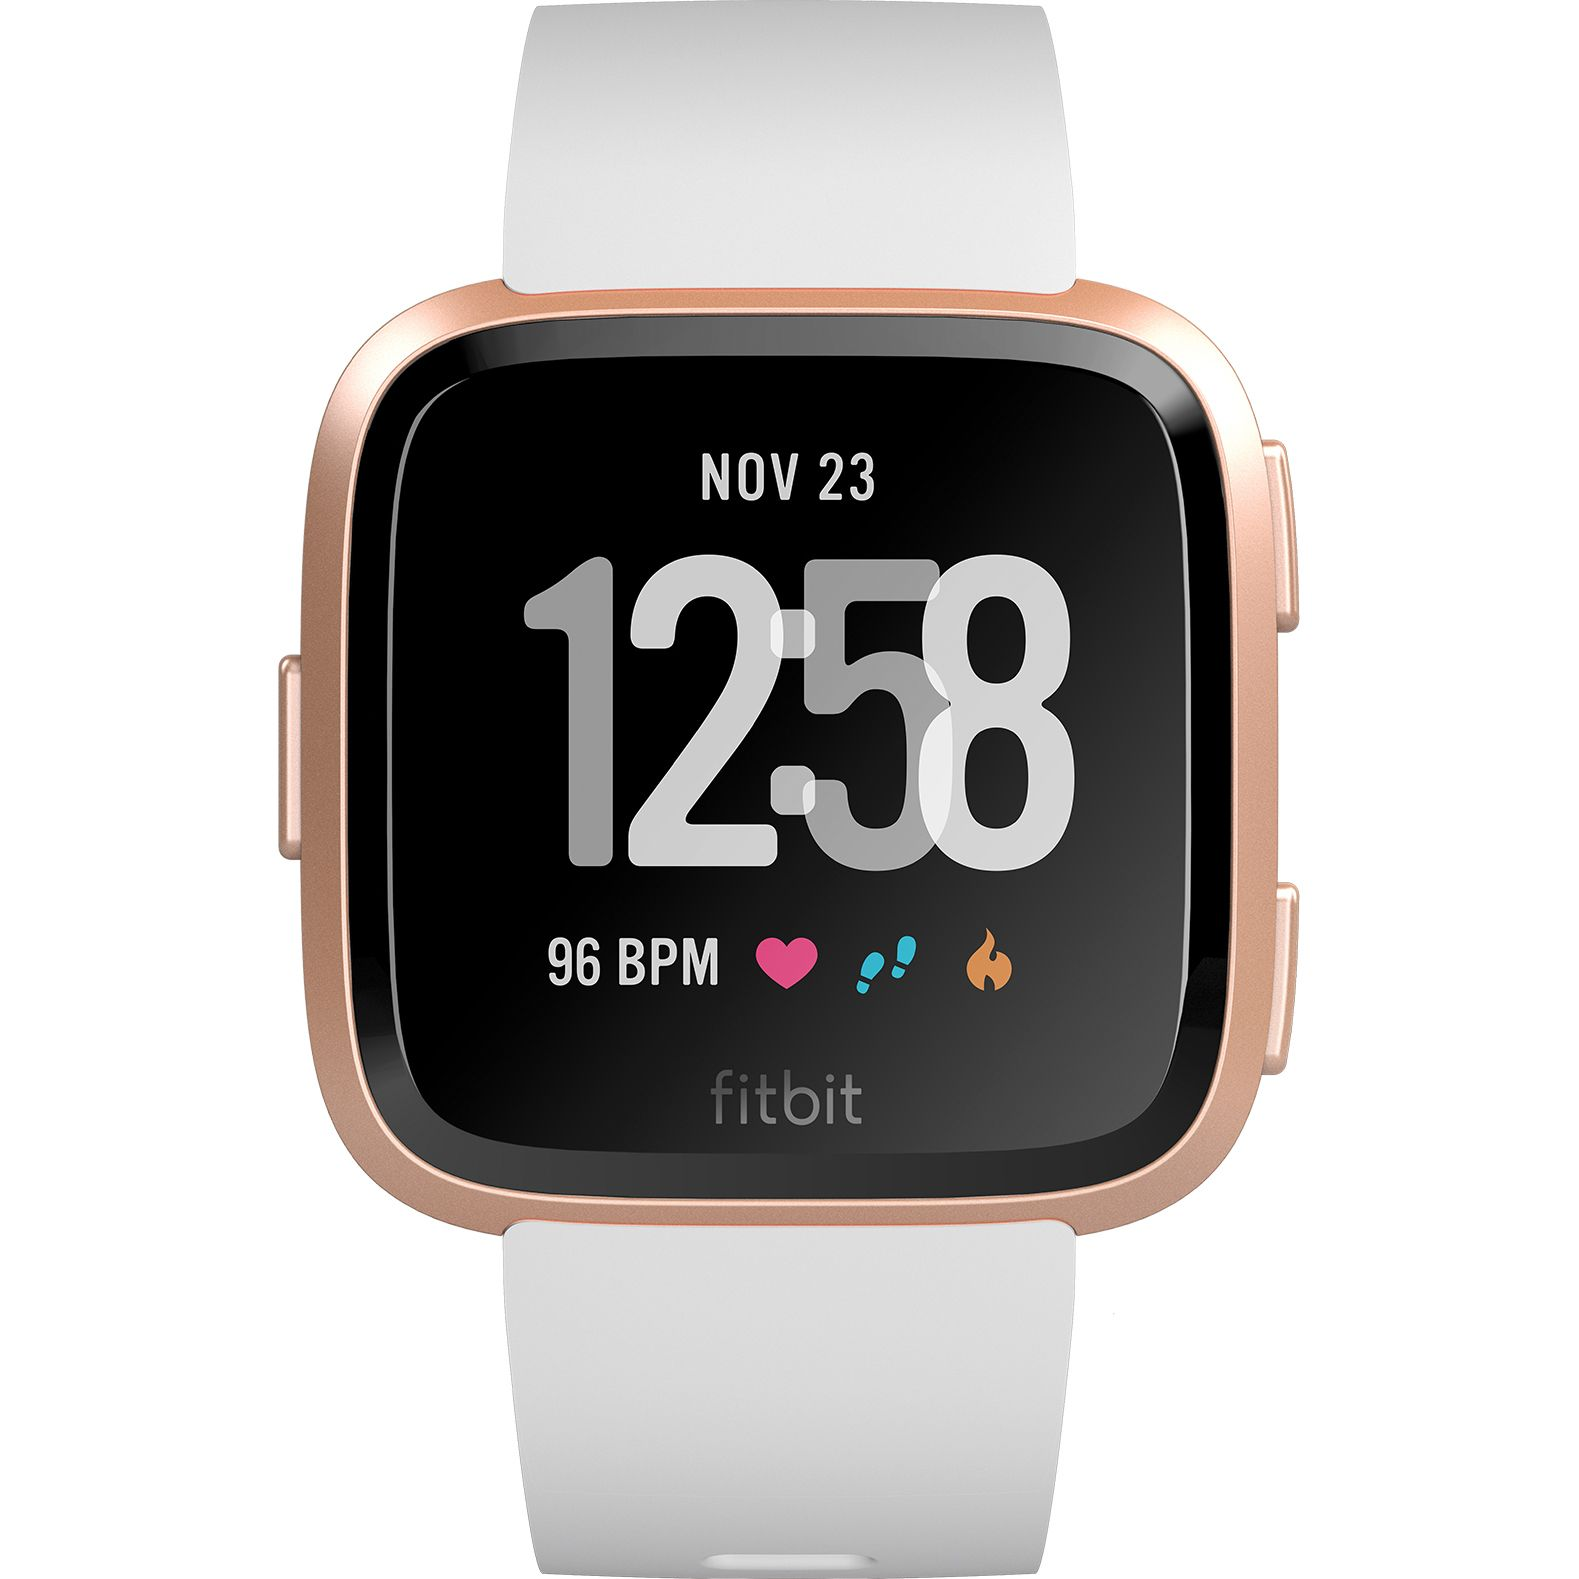 Smartwatch Fitbit Versa (NFC) - White Band / Rose Gold Case